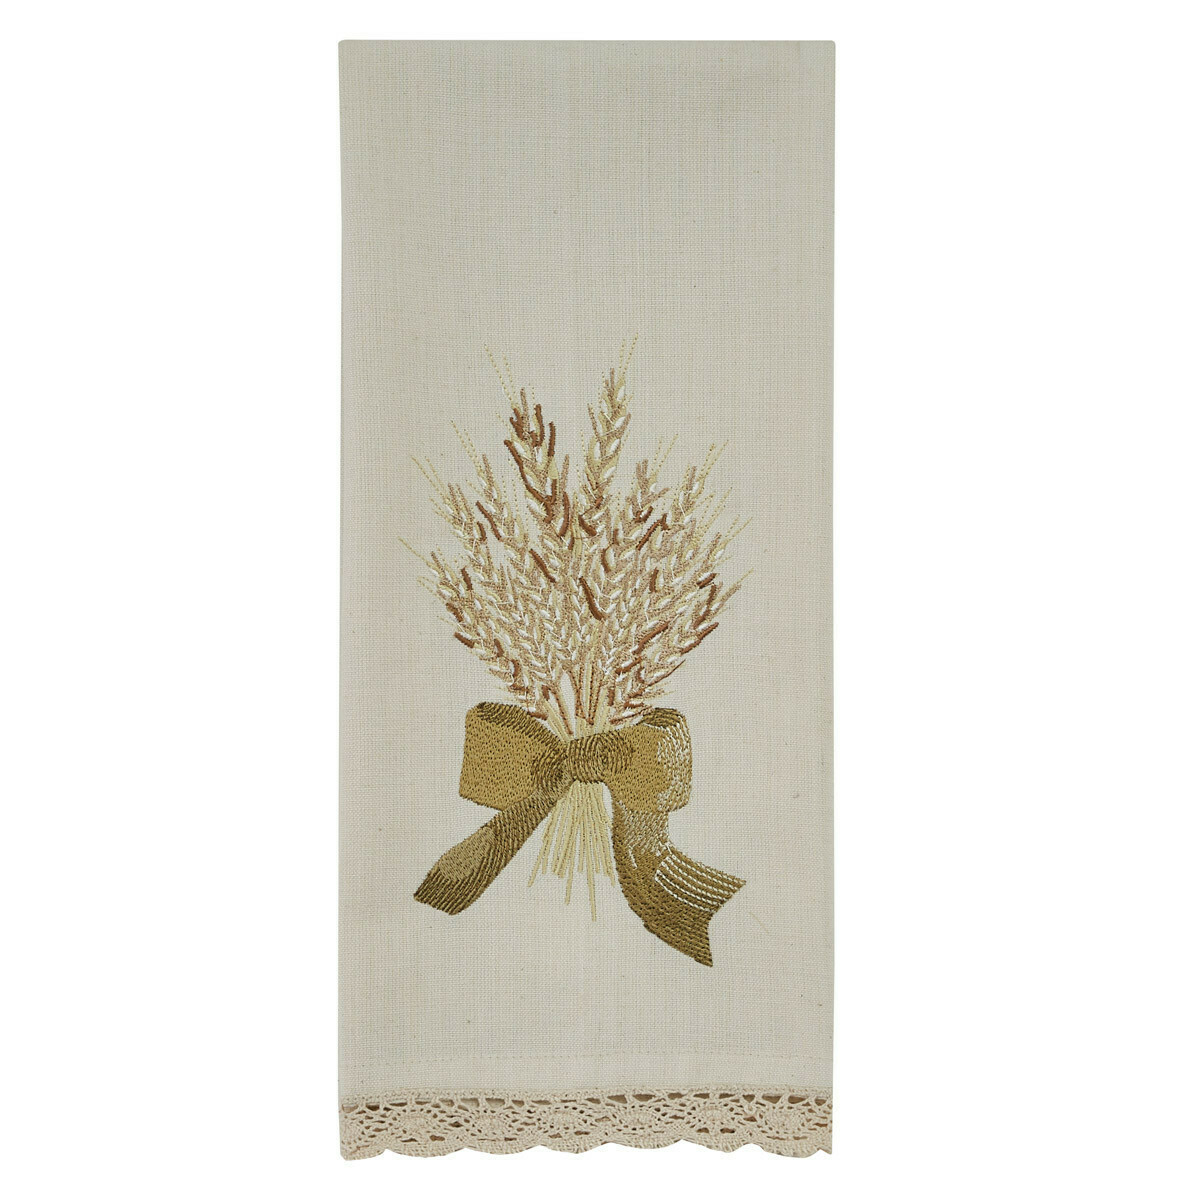 Wheat with Bow Embroidered Dishtowel